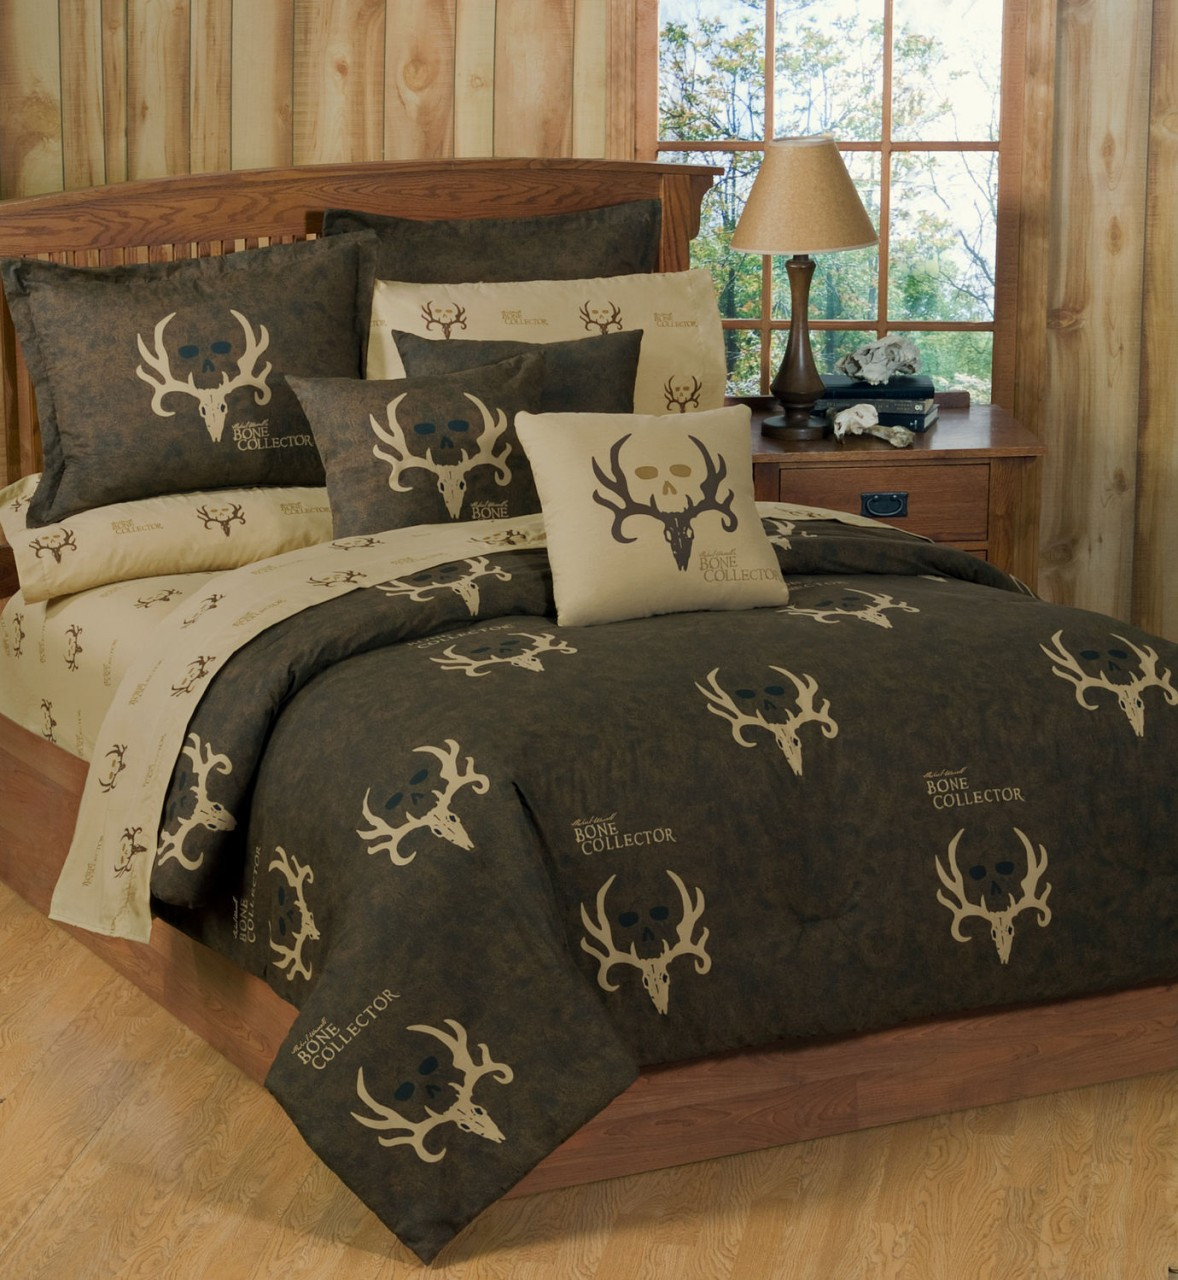 Michael Wadell Bone Collector 7 Pc Comforter Set Queen Size Camo Beds